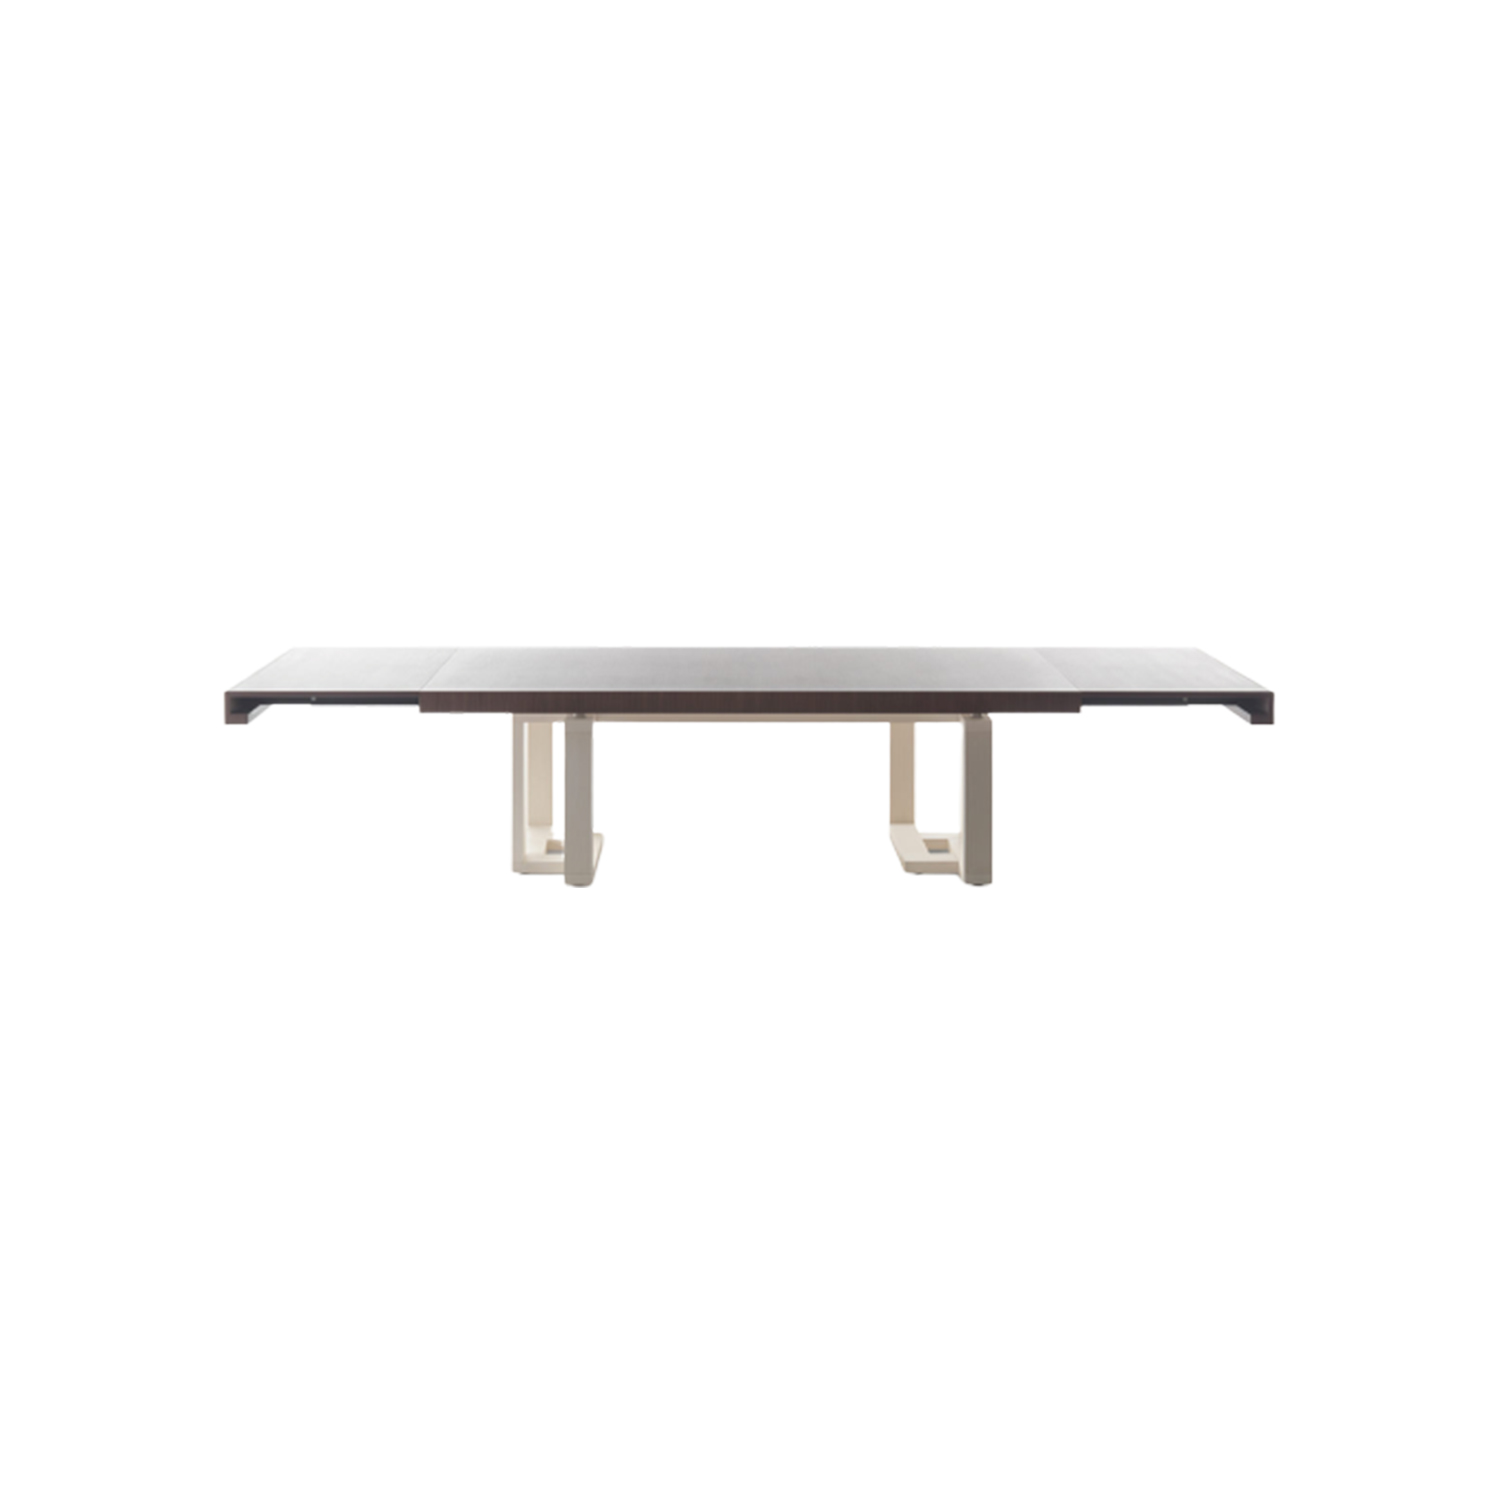 Fraseggio Extendable Table - Rectangular extensible table with aluminum rails and leaves magnetic alignment. Linear, orthogonal, extremely simple in form and mechanism, it effectively modulates itself and the surrounding space by extending on the fixed base. The two-tone increases aspects of lightness and its dialogue with accuracy and precision in the space, almost as if following a poetic and musical matrix.